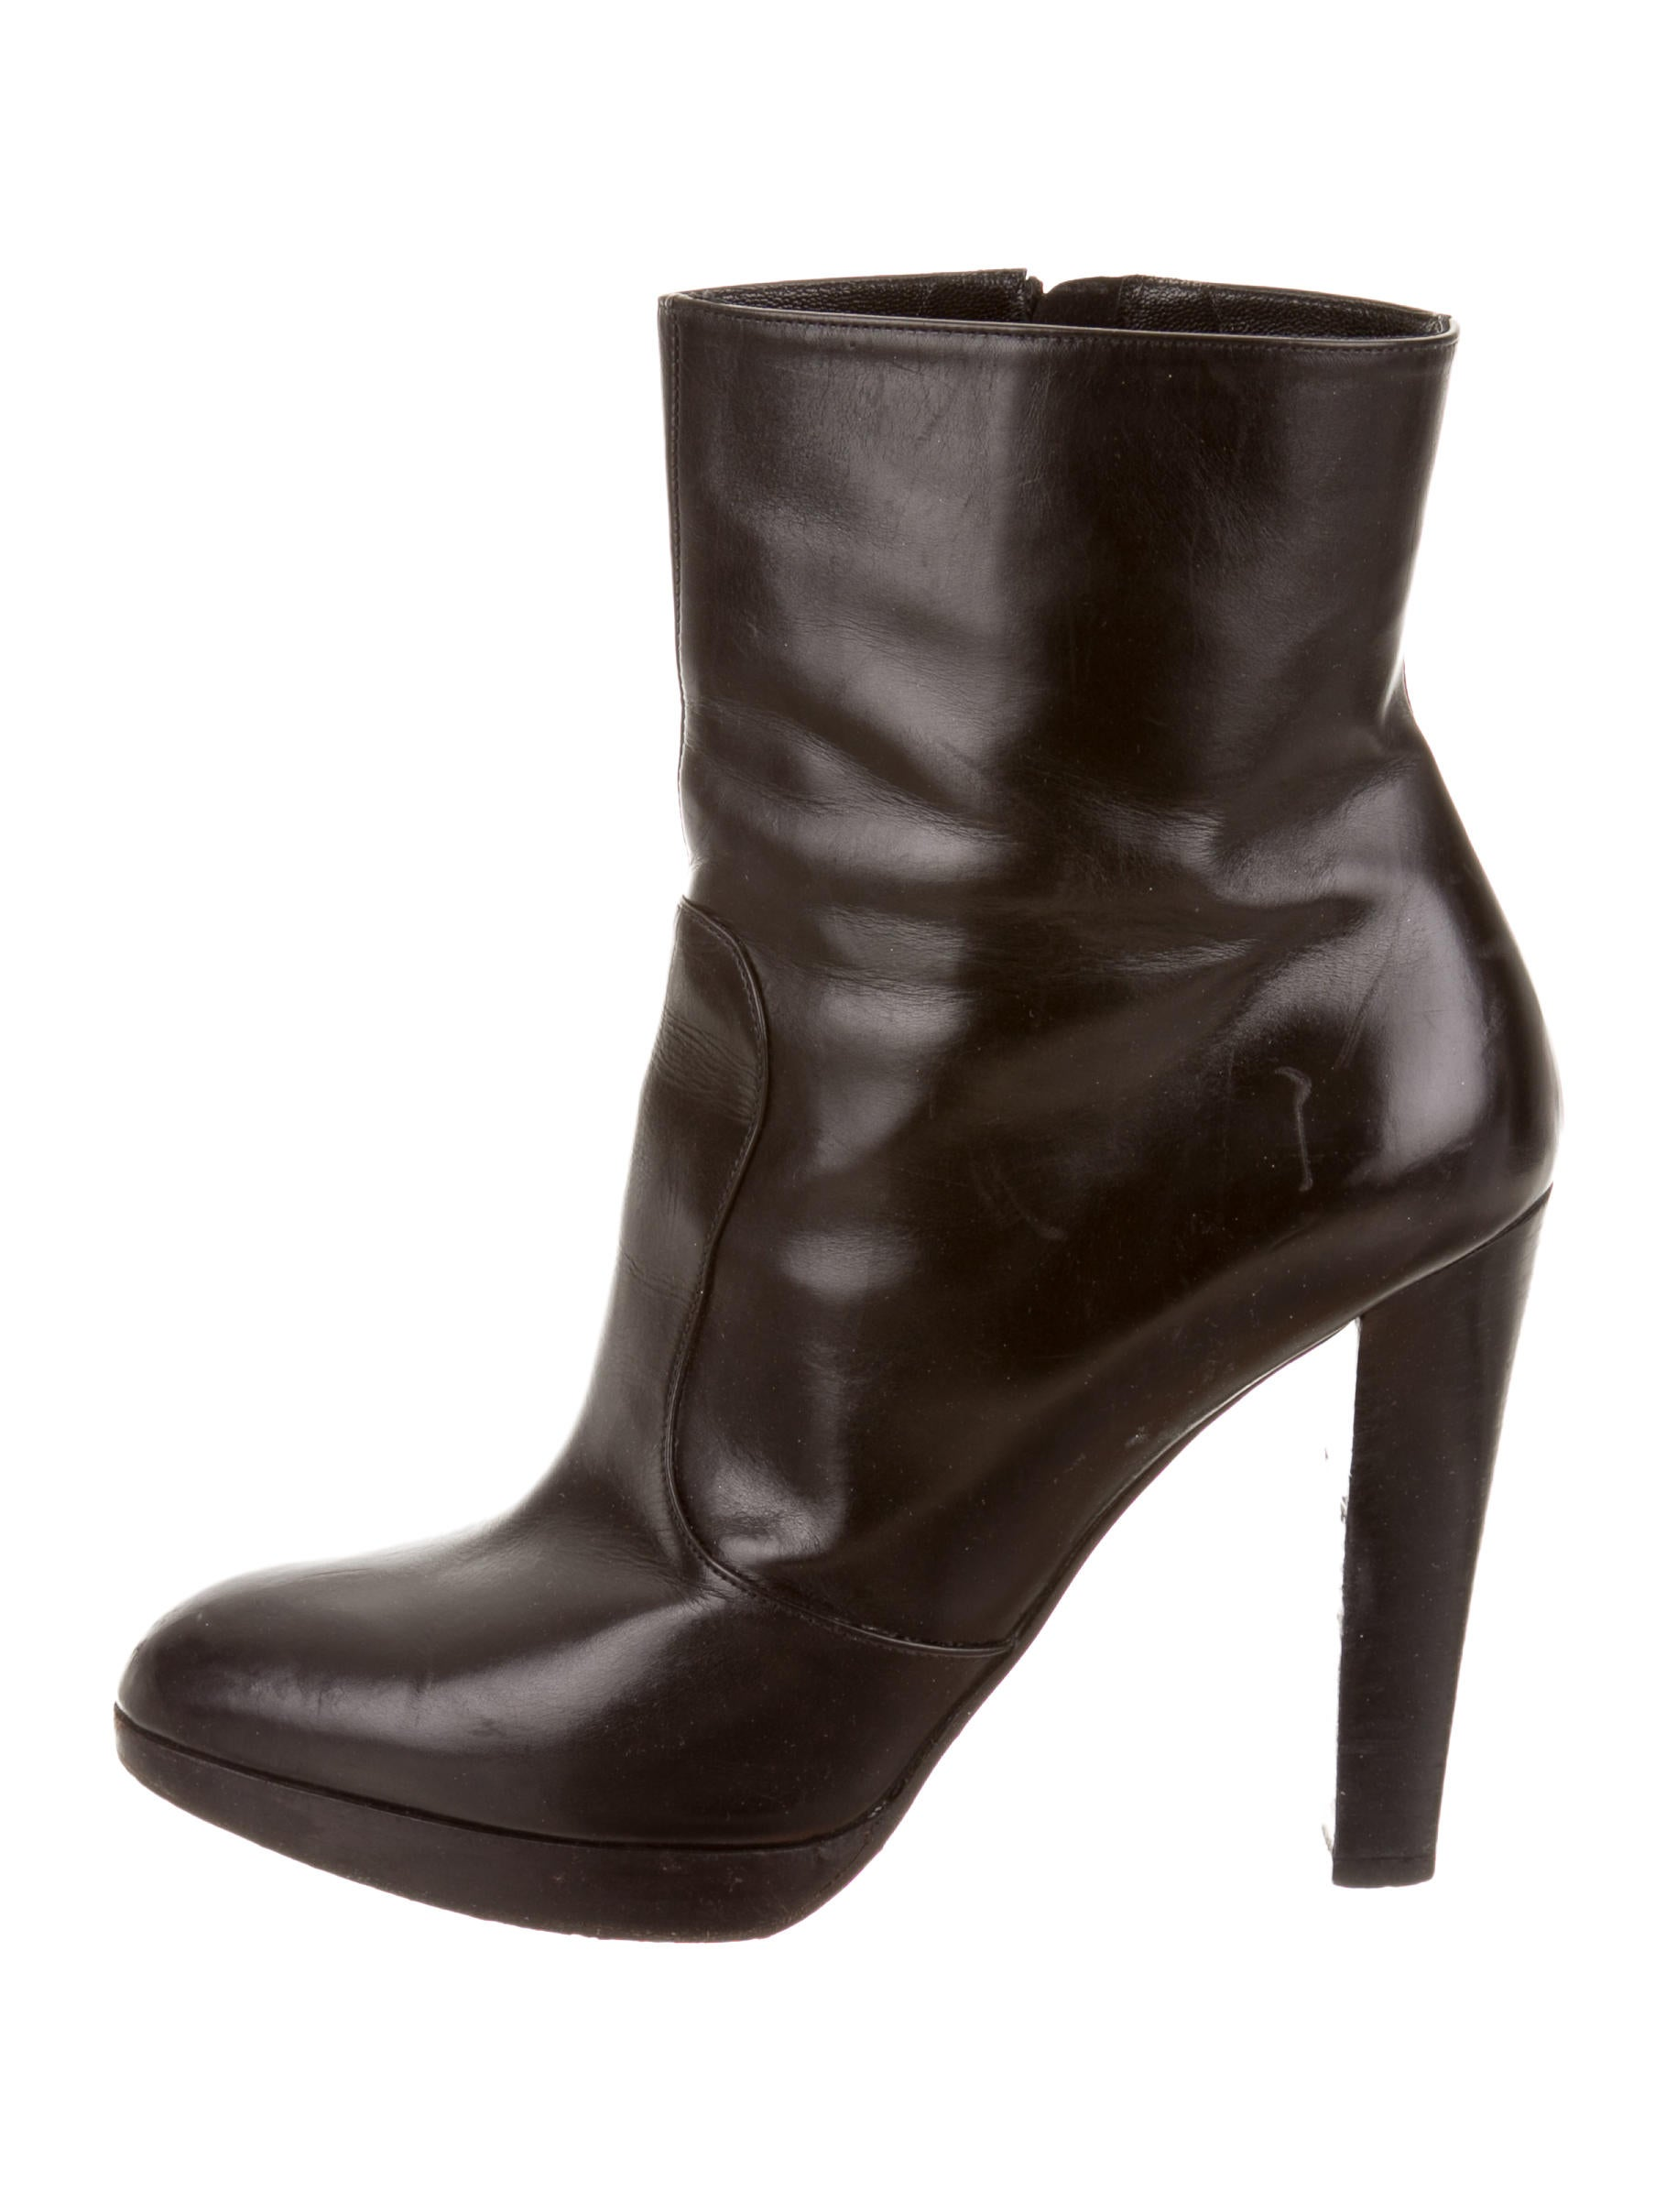 brian atwood leather platform ankle boots shoes